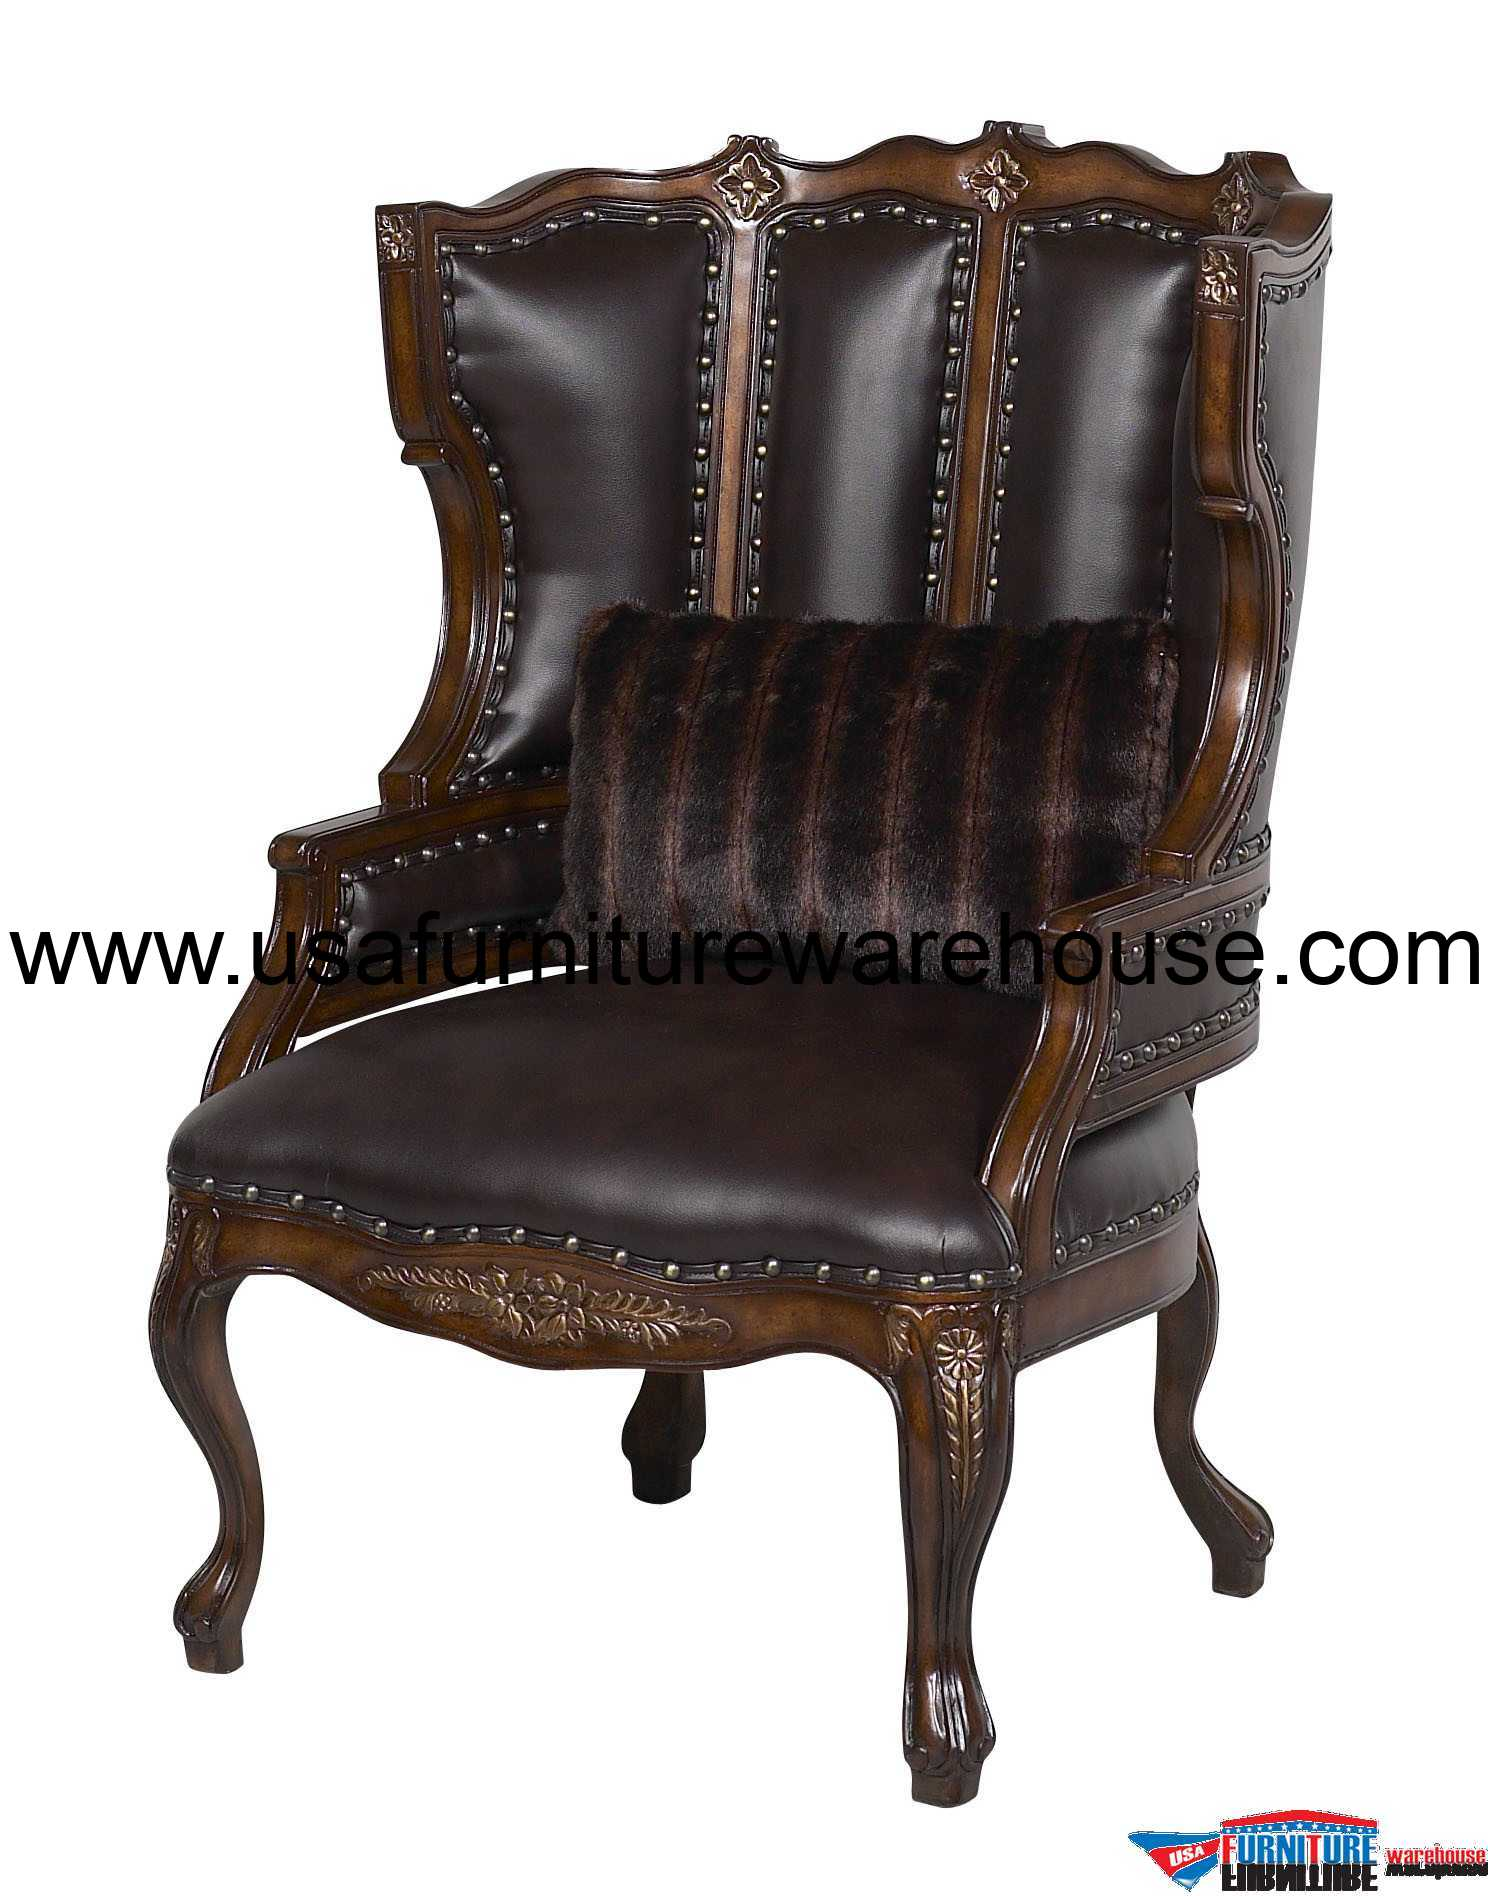 Wood Accent Chair Benetti 39s Italia Cavali Wood Trim Accent Chair